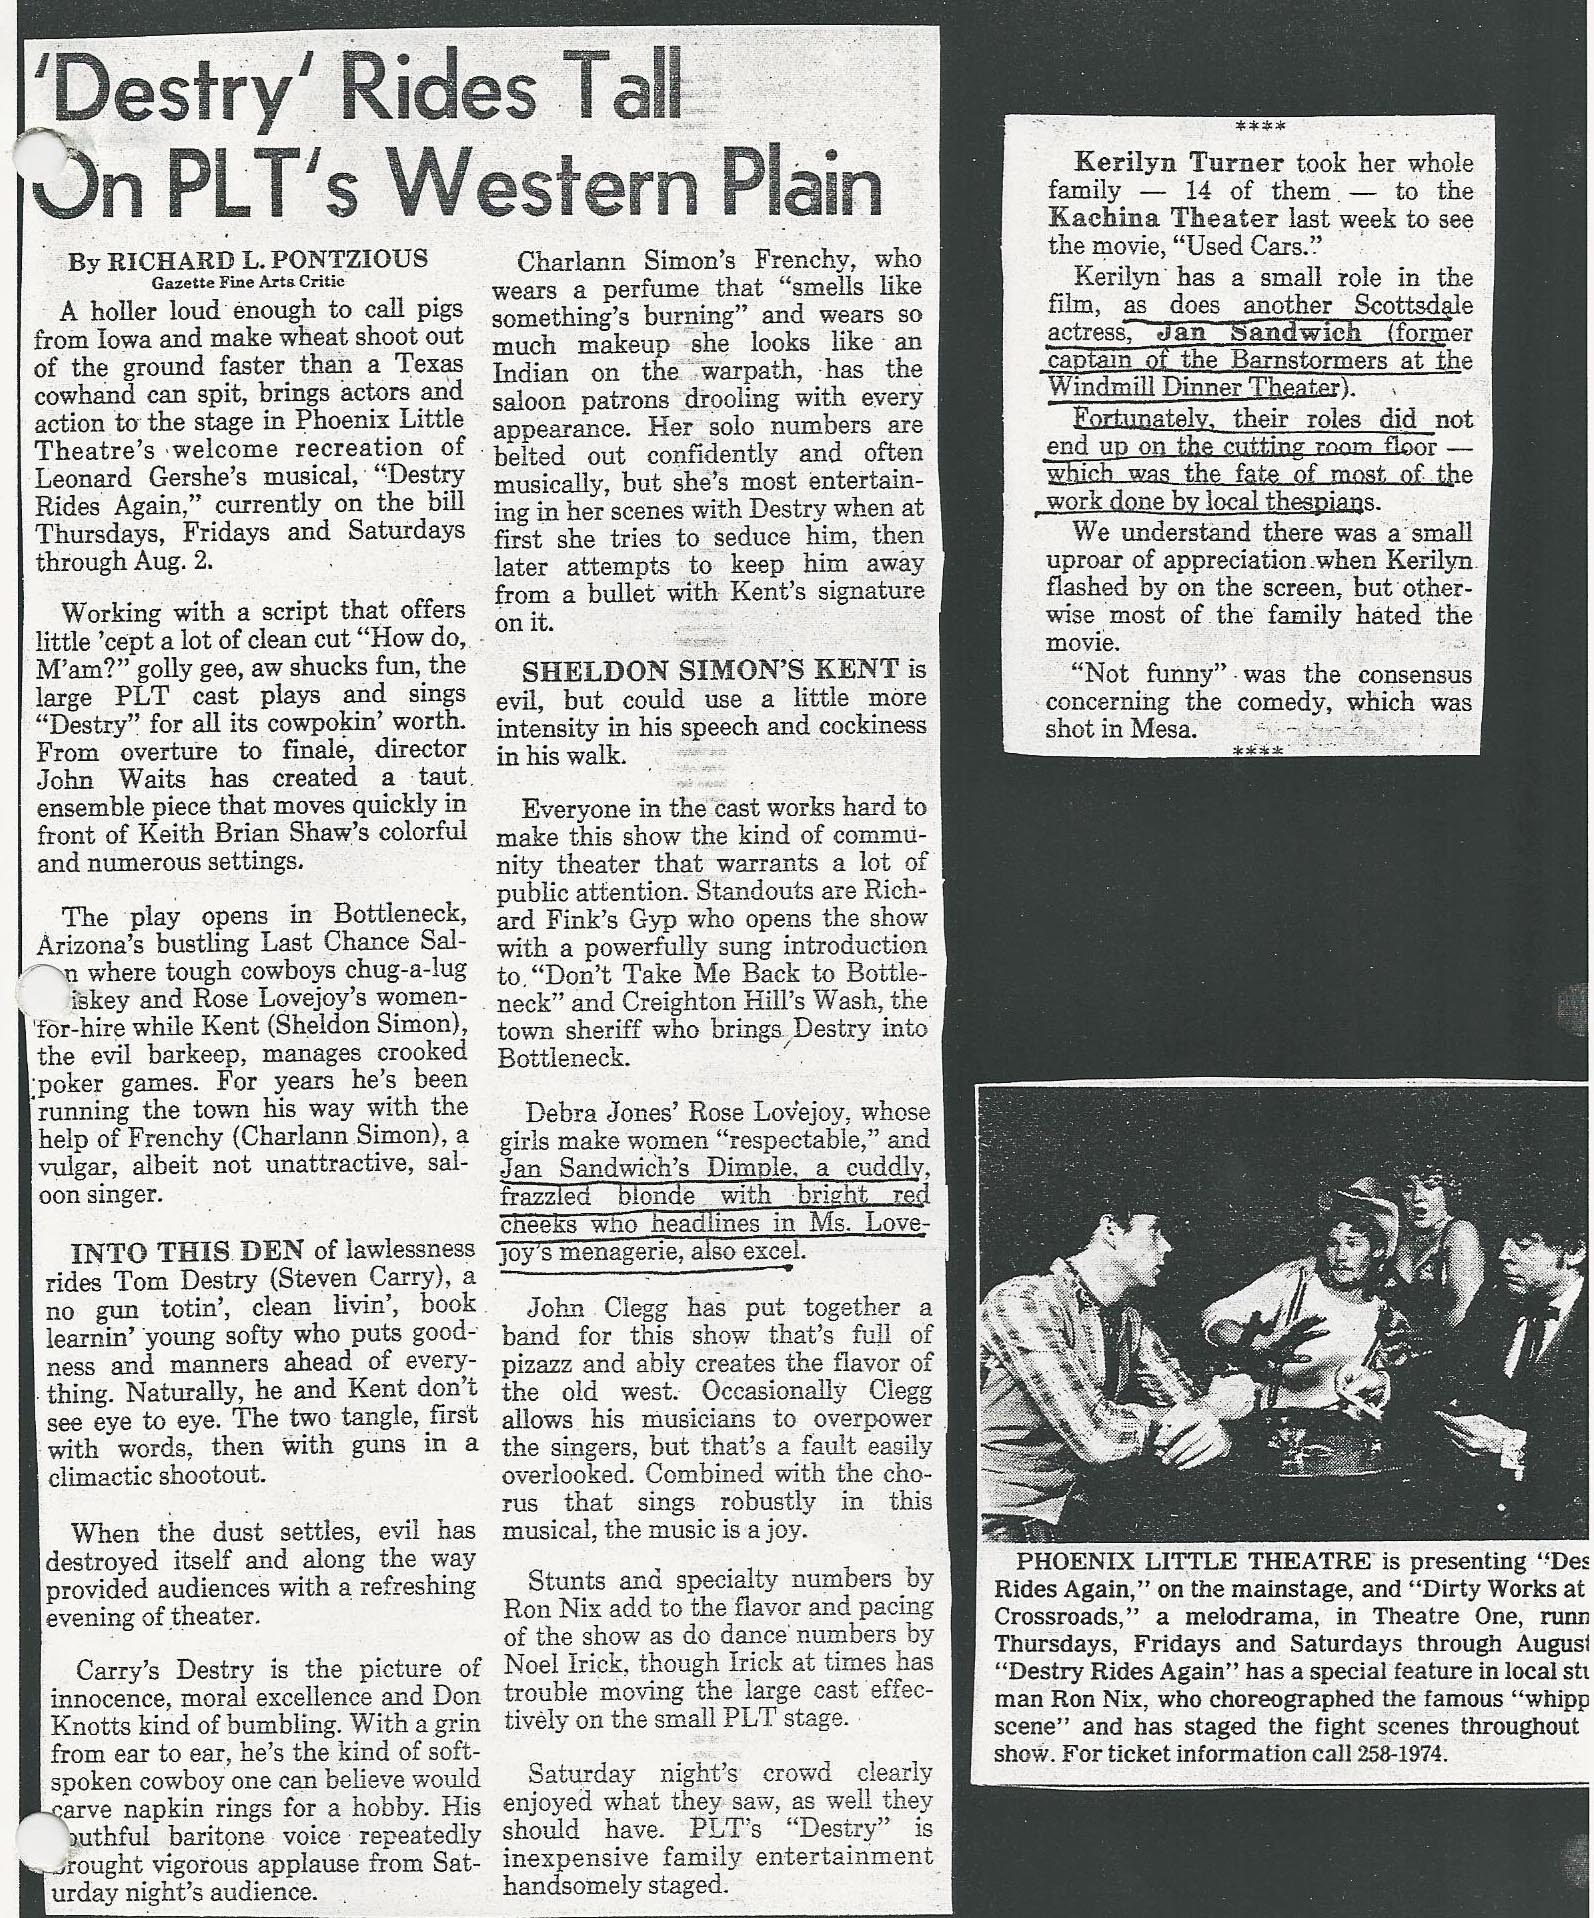 """Destry Rides Again"" was produced at Phoenix Little Theatre in 1980 (?) Clippings from the collection of Jan Sandwich."